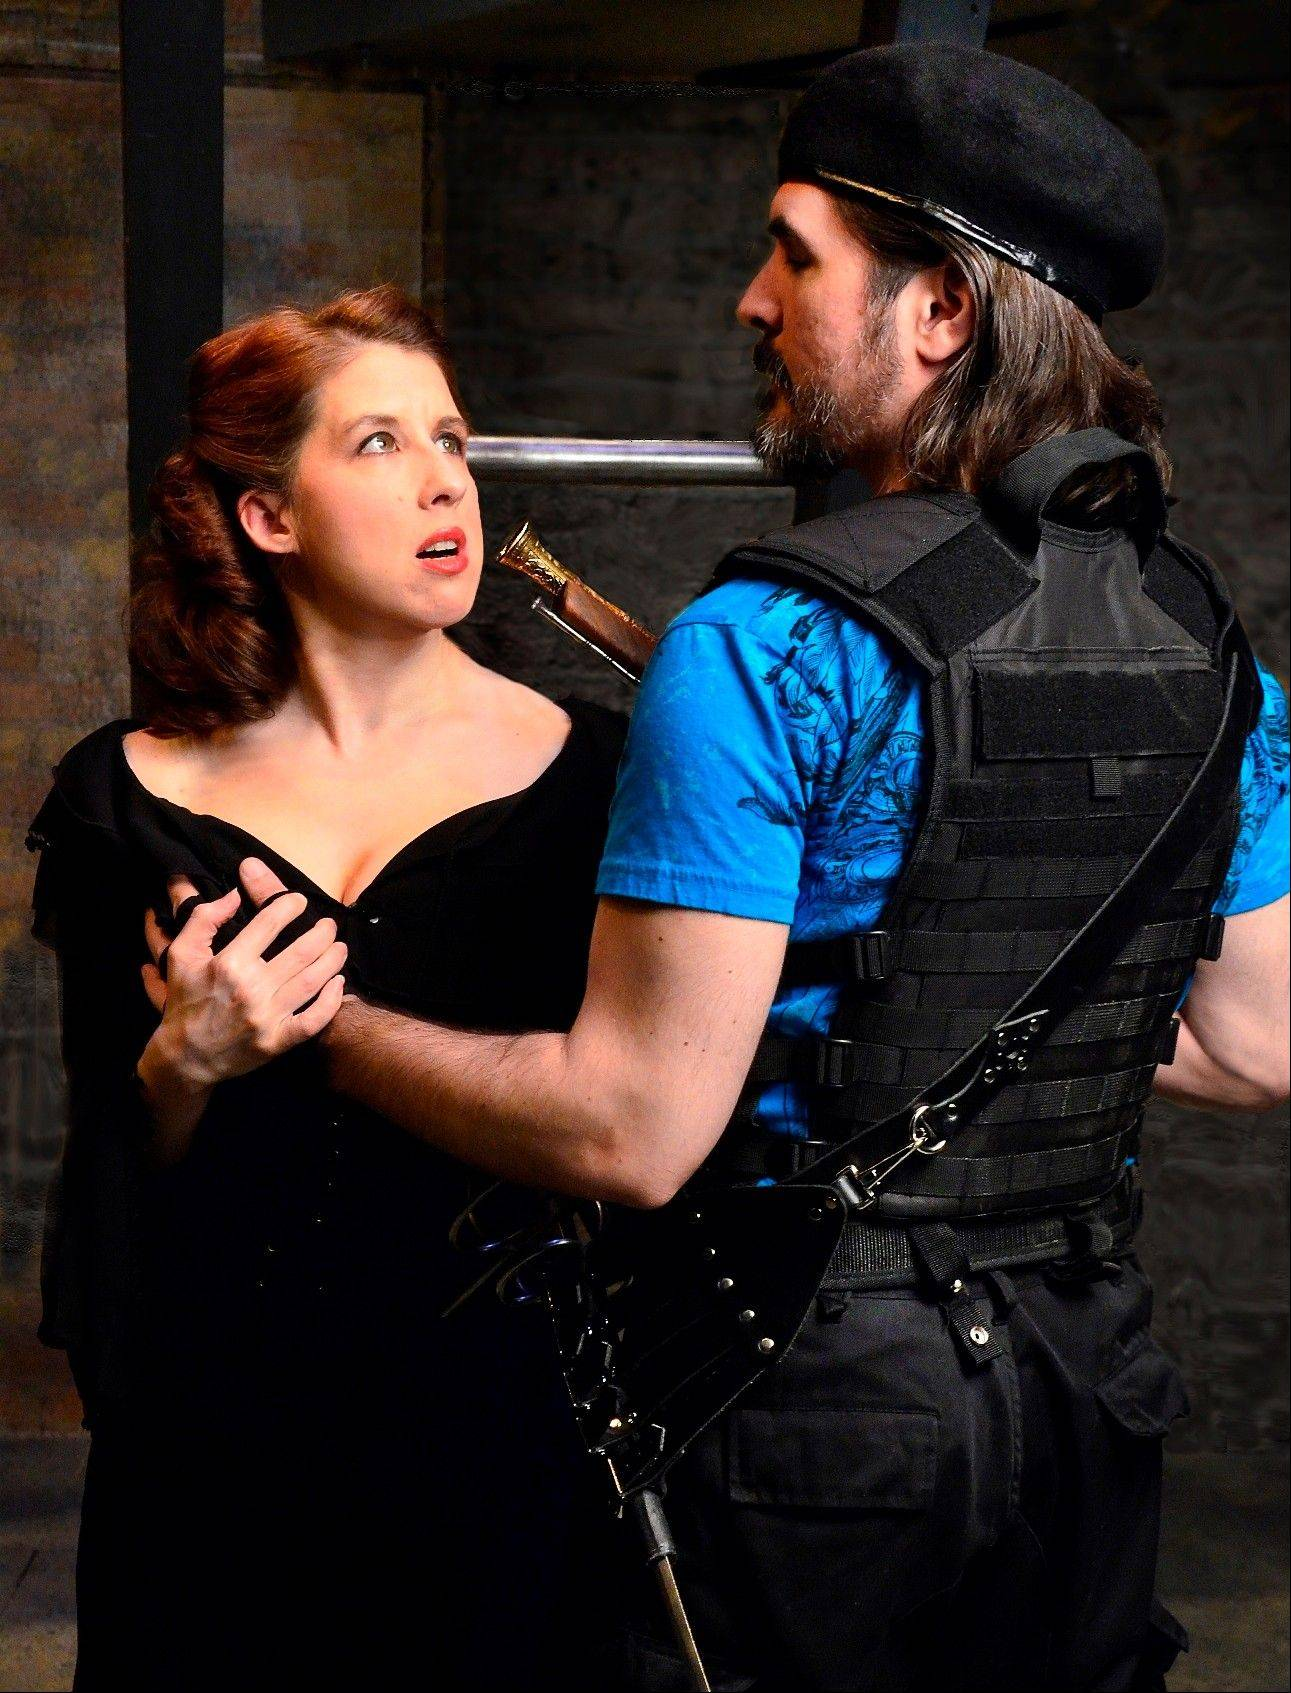 "Athos (Chris Hainsworth) confronts the duplicitous Milady (Katie McLean Hainsworth), an agent of the scheming Cardinal Richelieu in ""The Three Musketeers,"" running through July 21 at Lifeline Theatre."